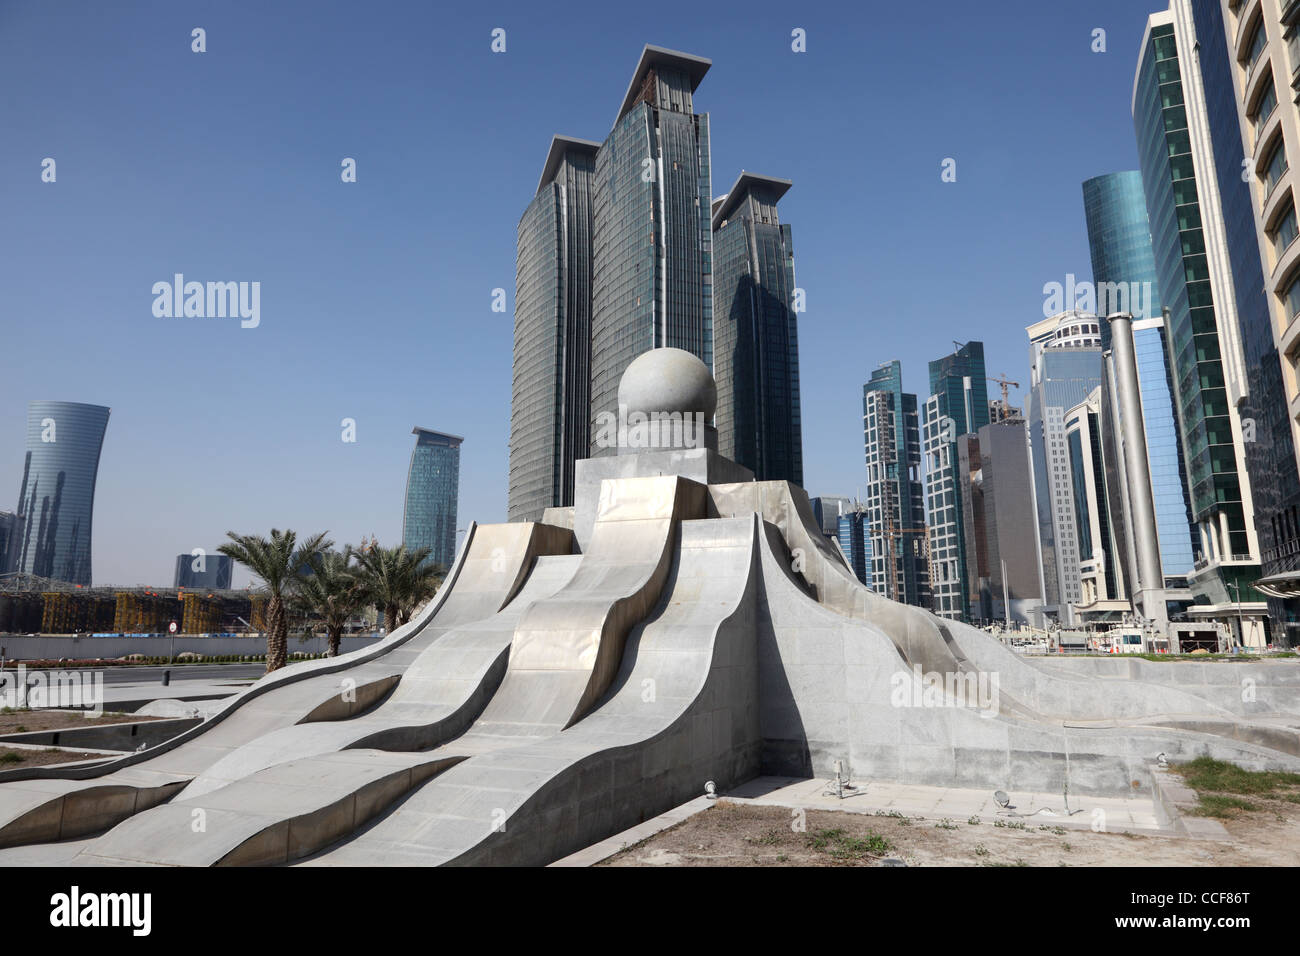 New downtown district West Bay in Doha, Qatar - Stock Image